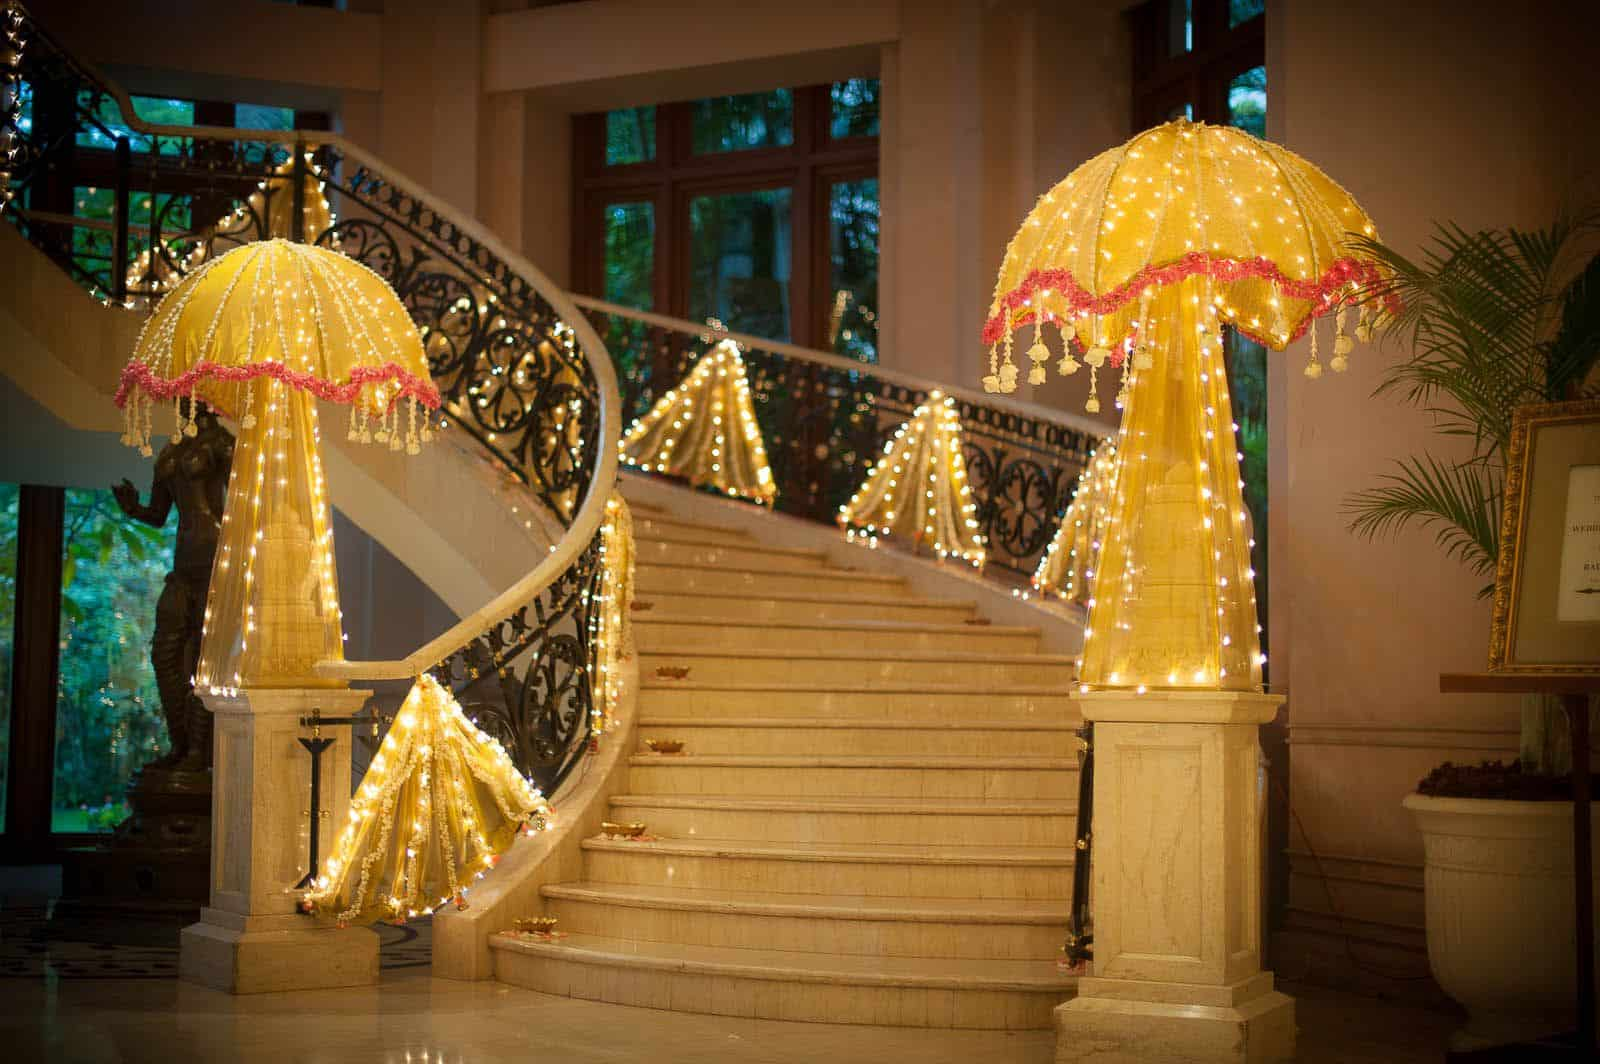 candid-wedding-photography-bangalore-leela-palace-staircase